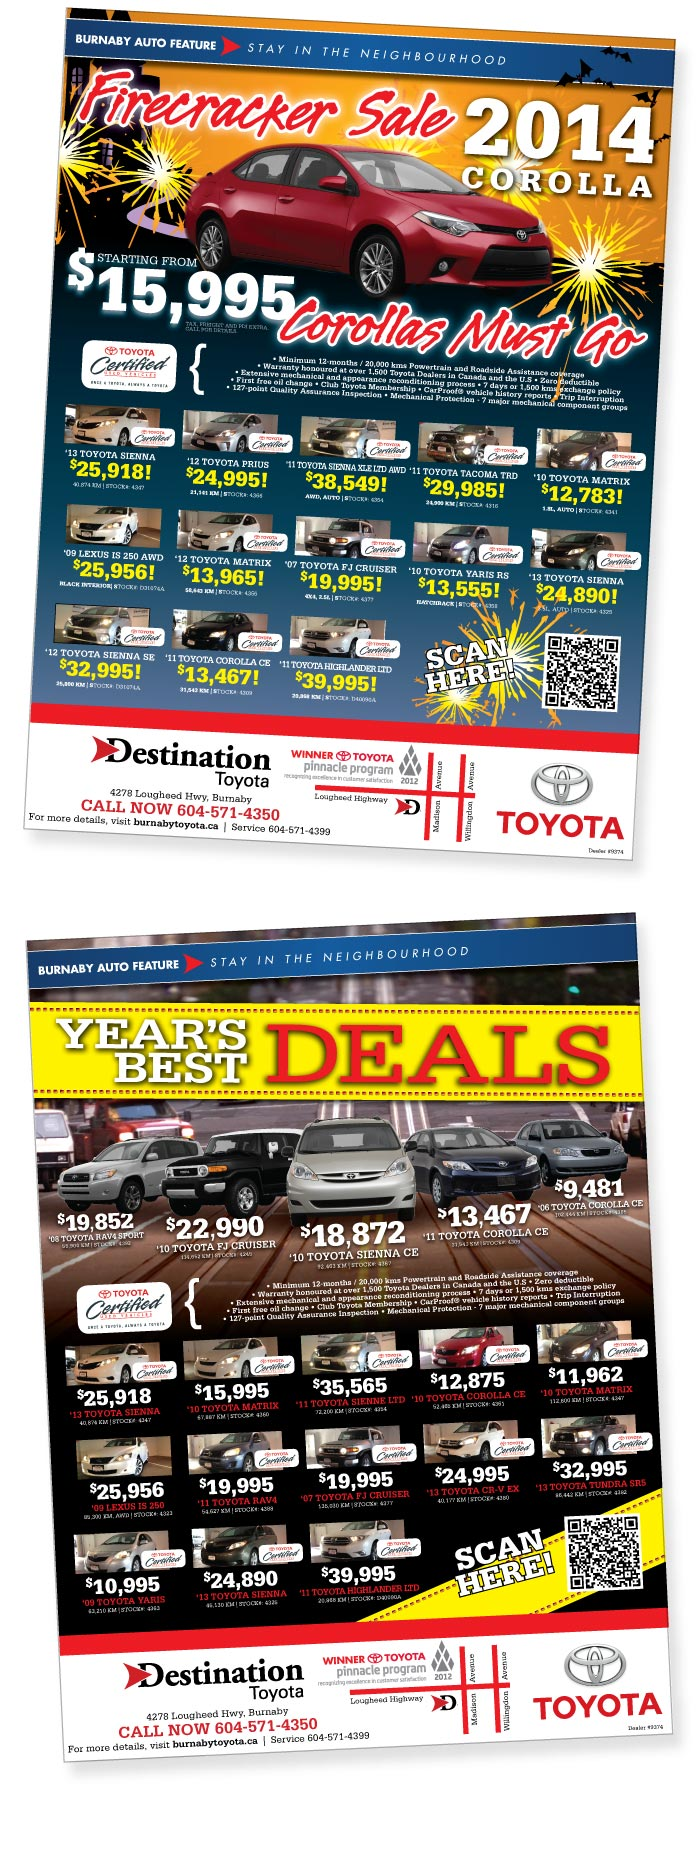 DestinationAuto-Timeline